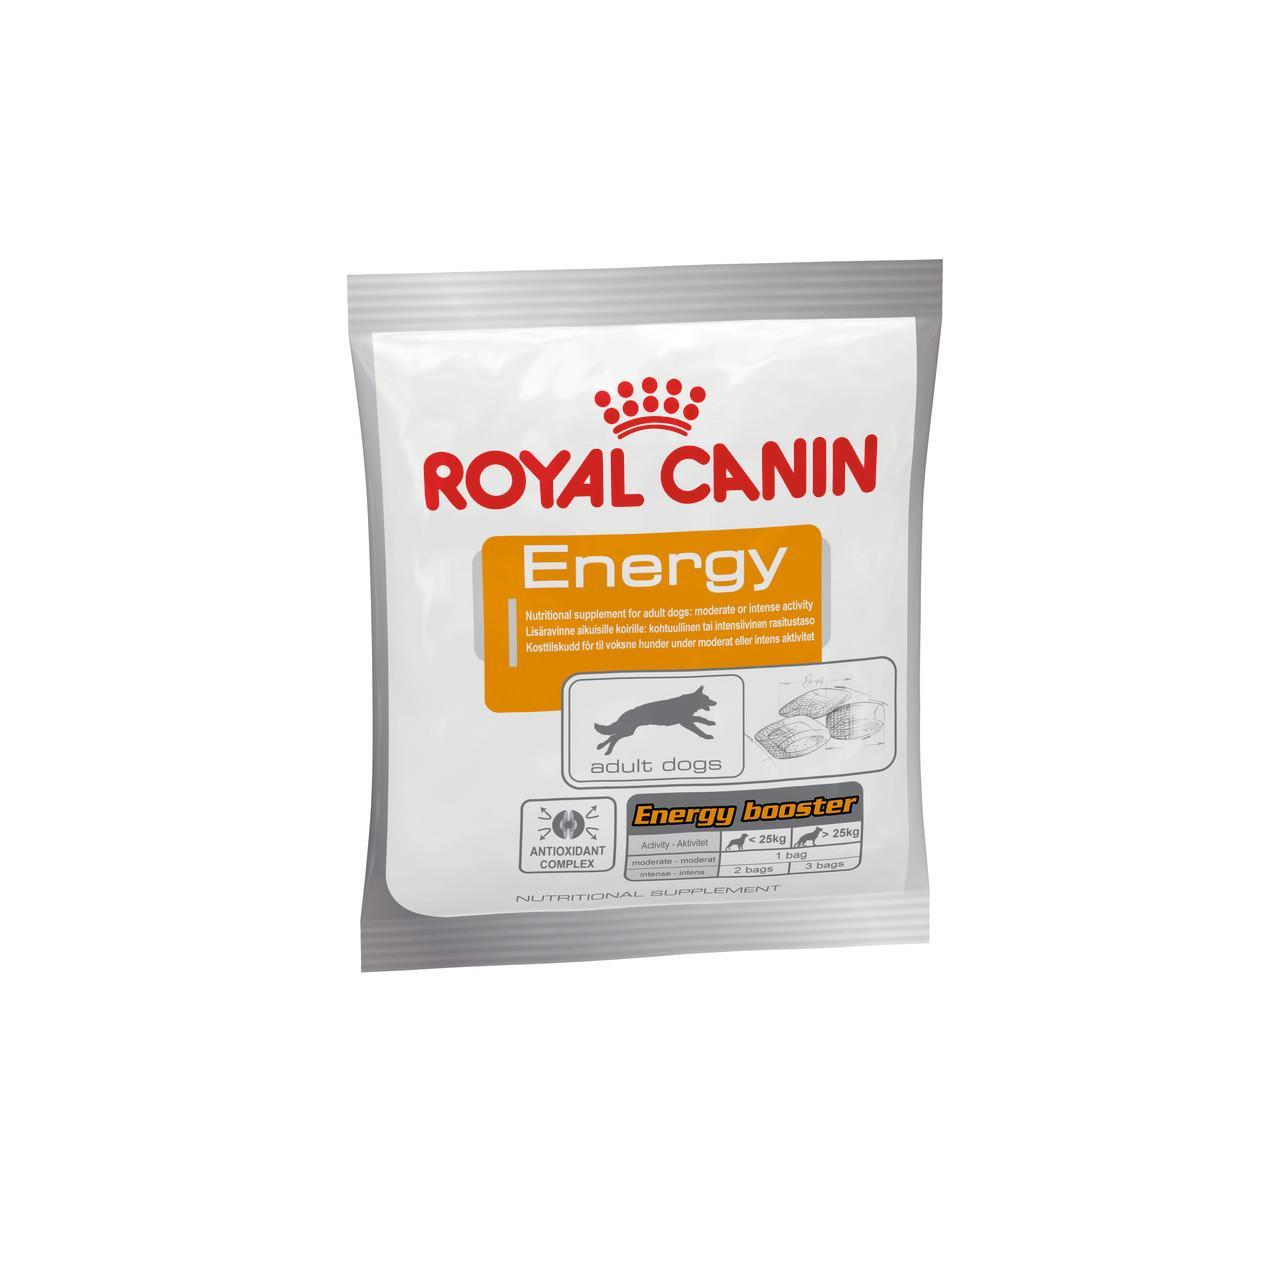 An image of Royal Canin Energy Treat